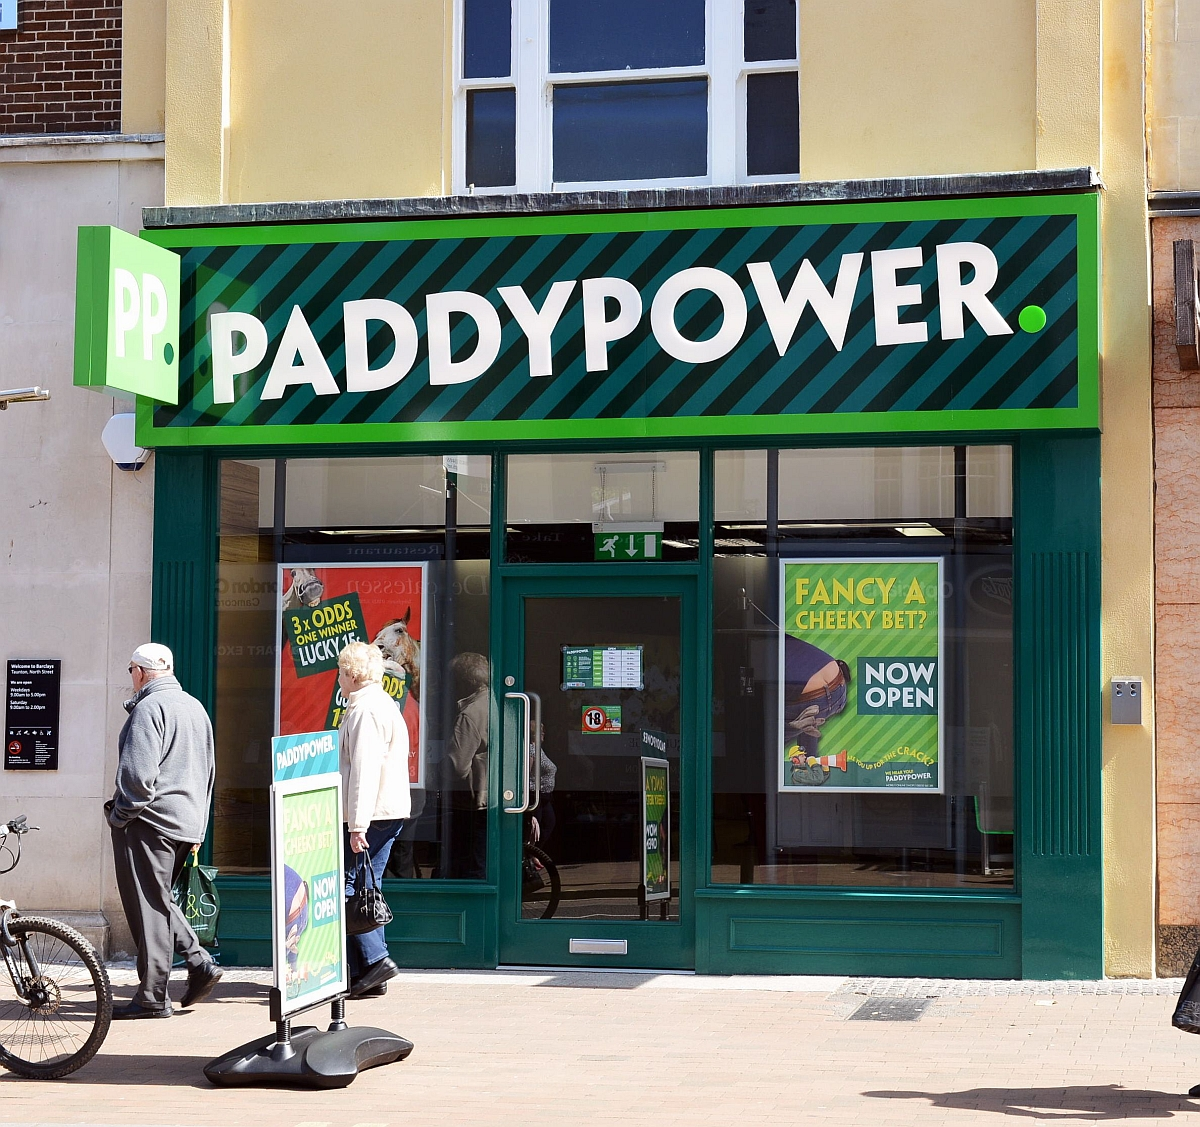 Paddy Power has applied to open a new branch in Wood Green